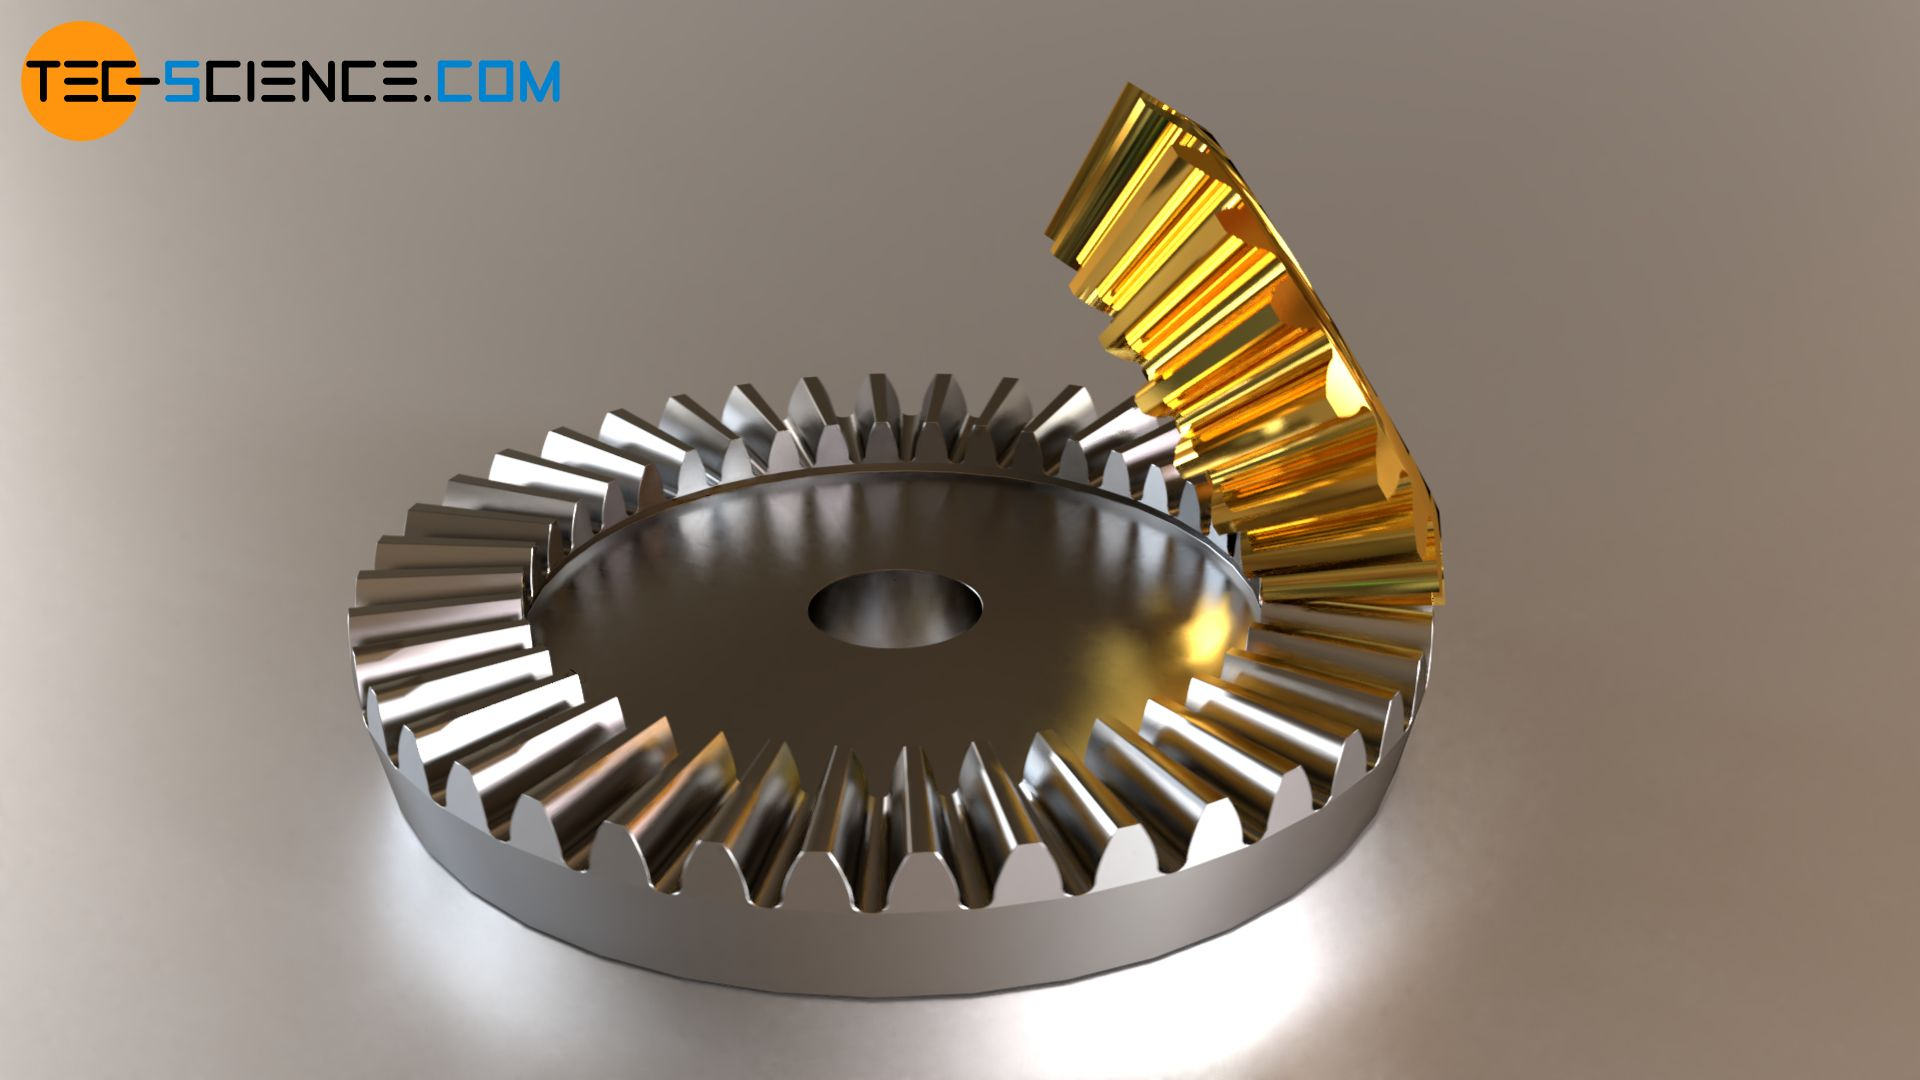 Planar crown gear (ring gear) and conventional bevel gear (pinion)